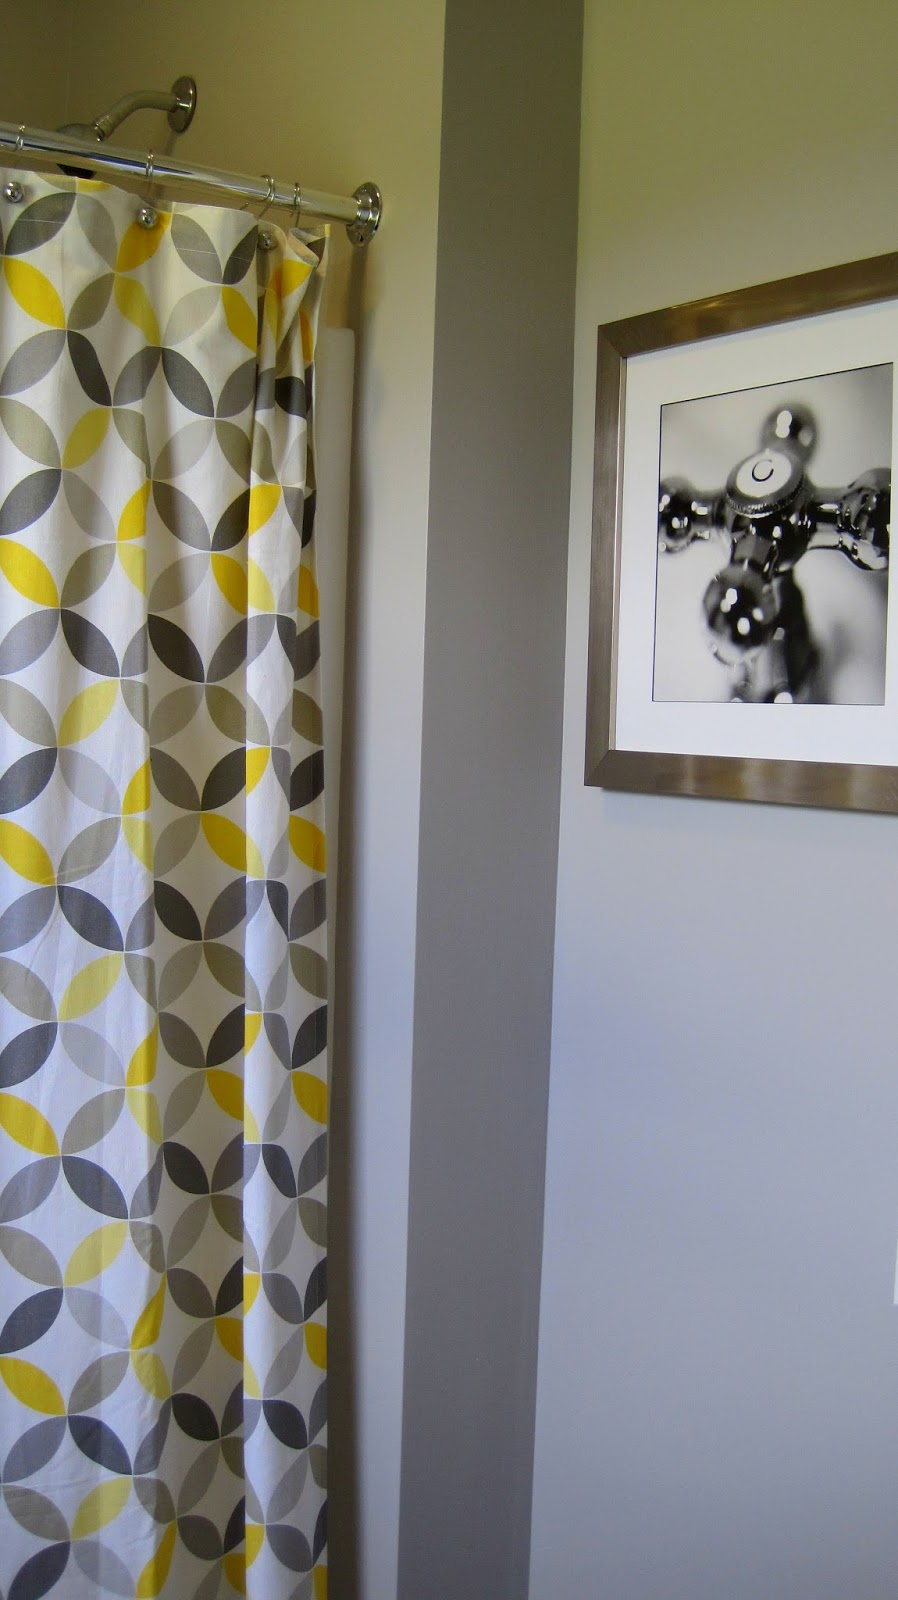 I married a tree hugger cheery yellow and grey bathroom for Bathroom decor yellow and gray